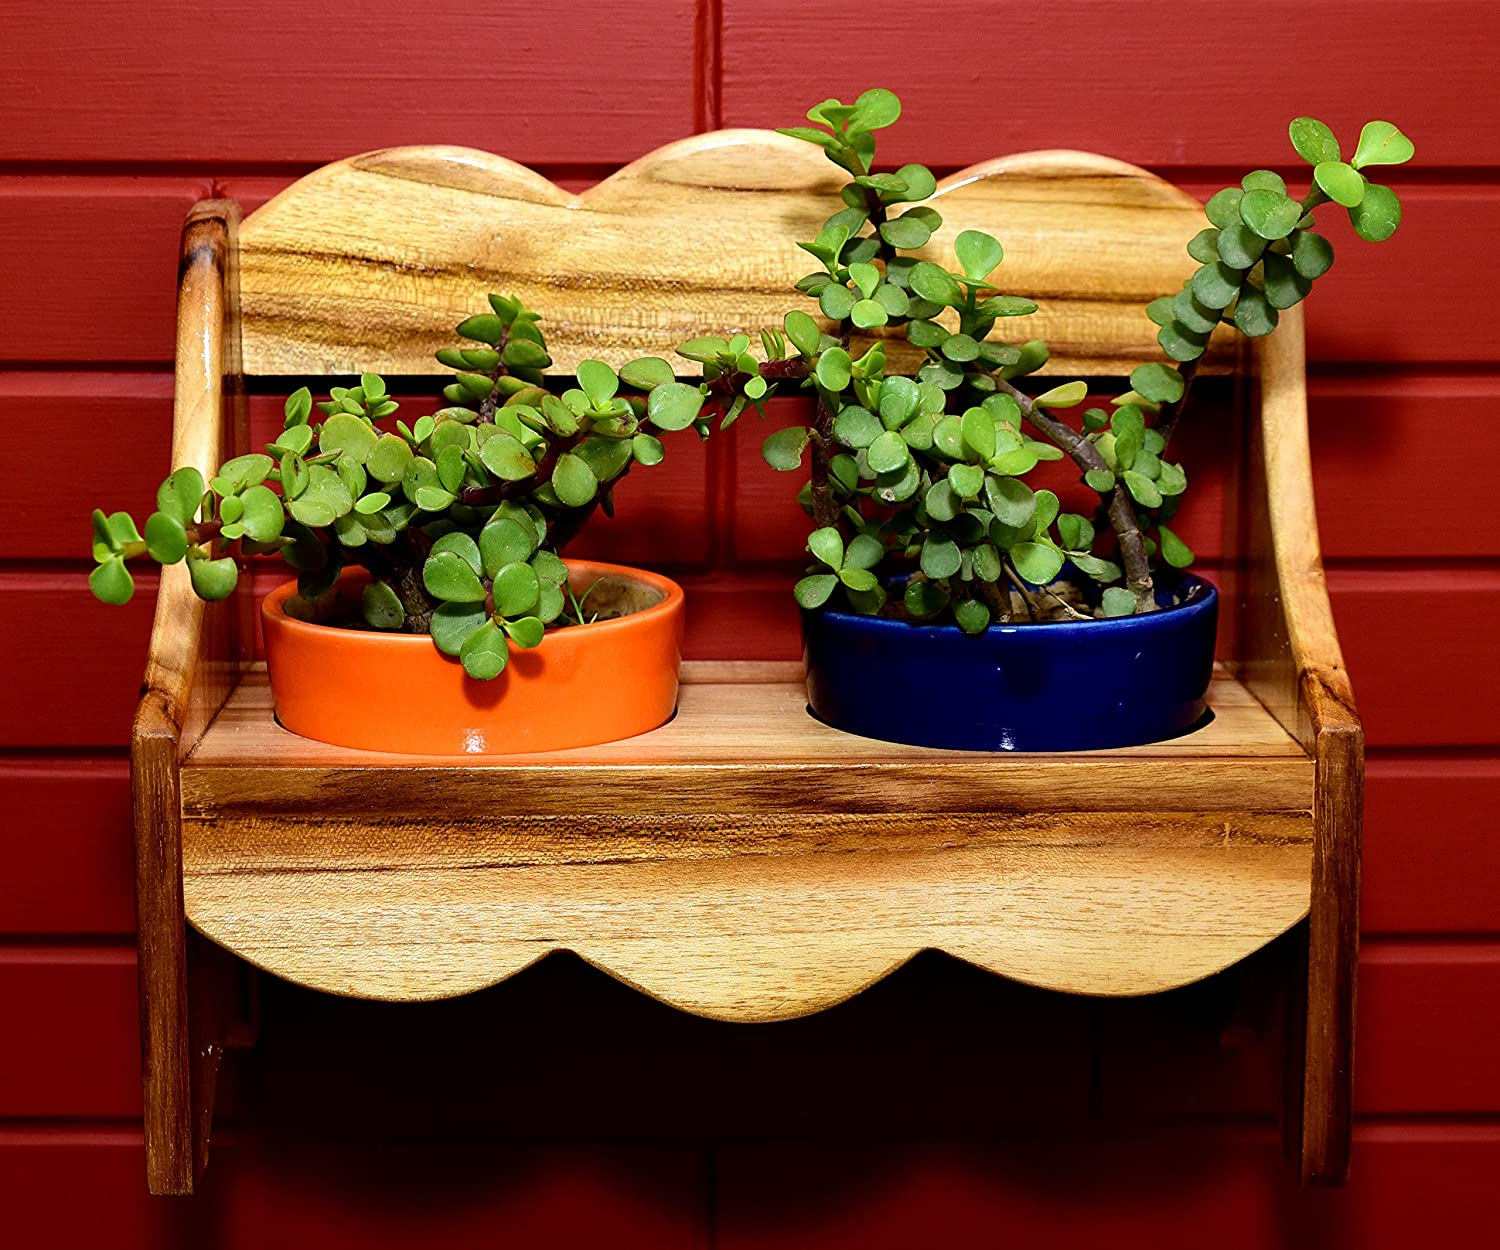 Noozpic Wooden Bench Planter with Ceramic Pots